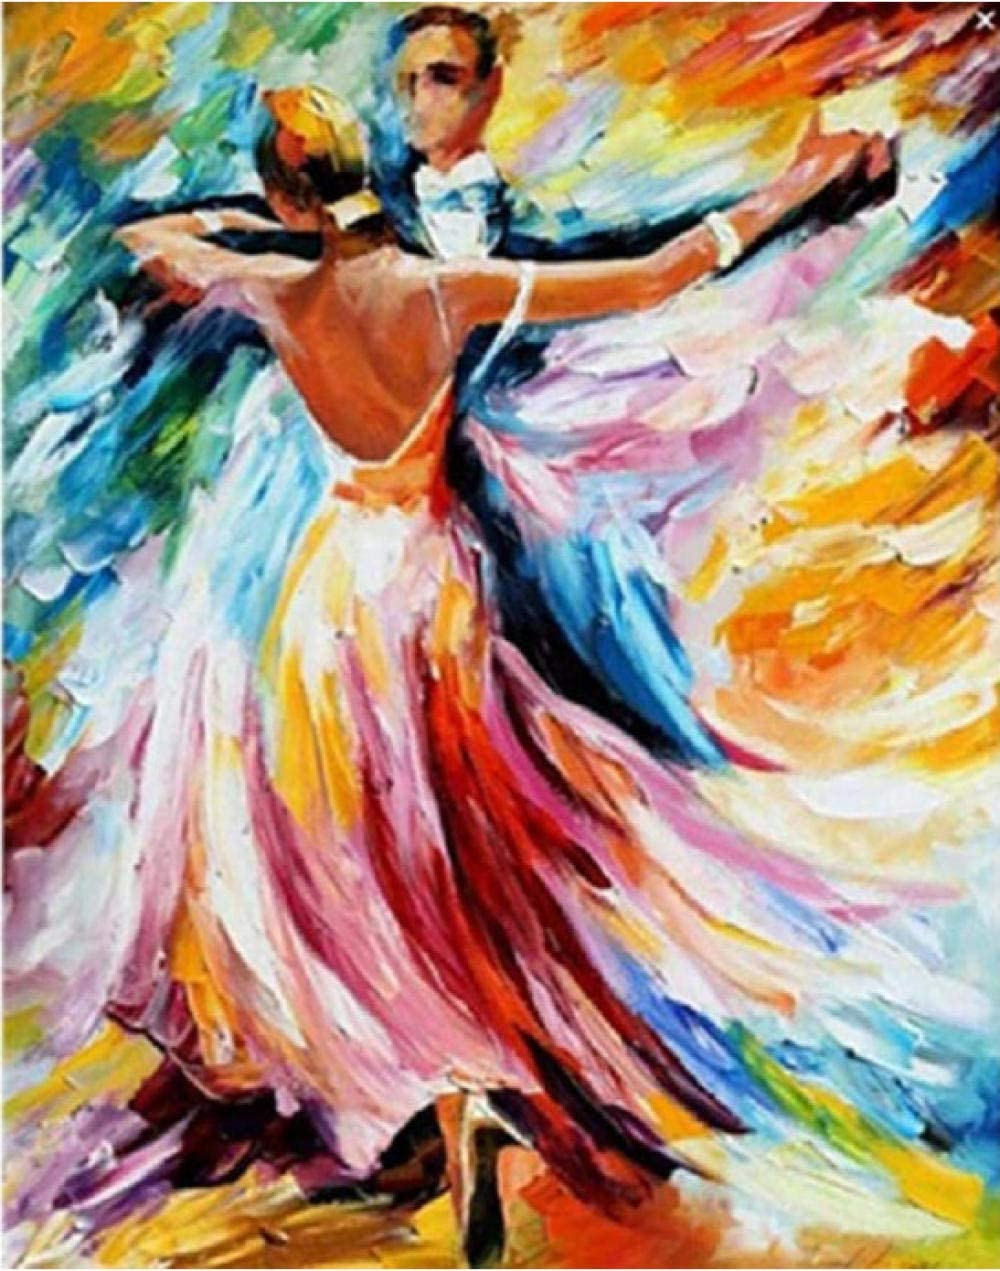 N-L Crafts Graphy Waltz Ballroom Dance Figure DIY Digital Painting by Numbers Modern Wall Art Canvas Painting Unique Gift Home Decor Handmade Painting